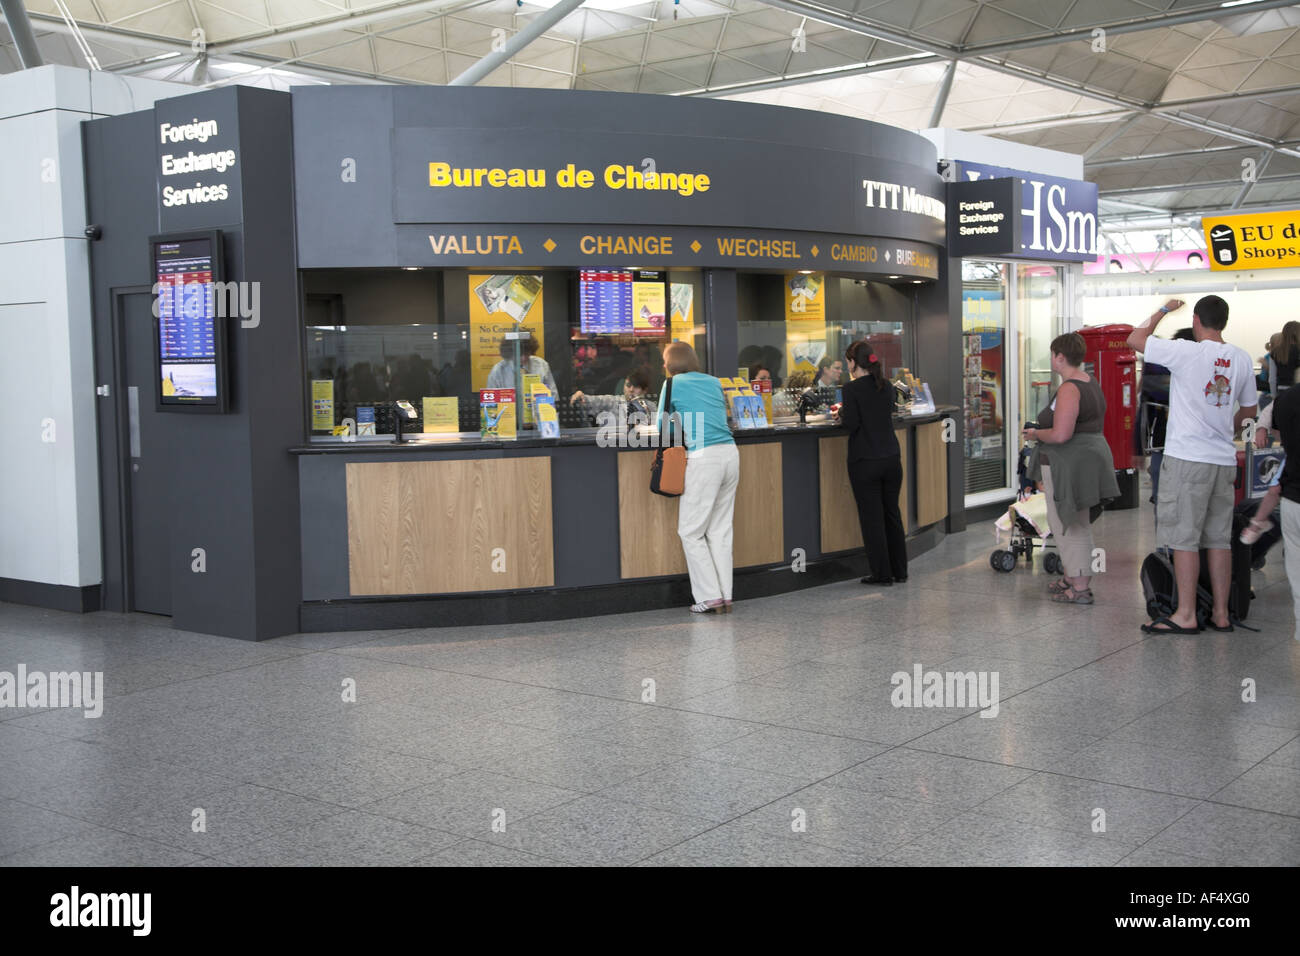 Bureau de change stock photos & bureau de change stock images alamy